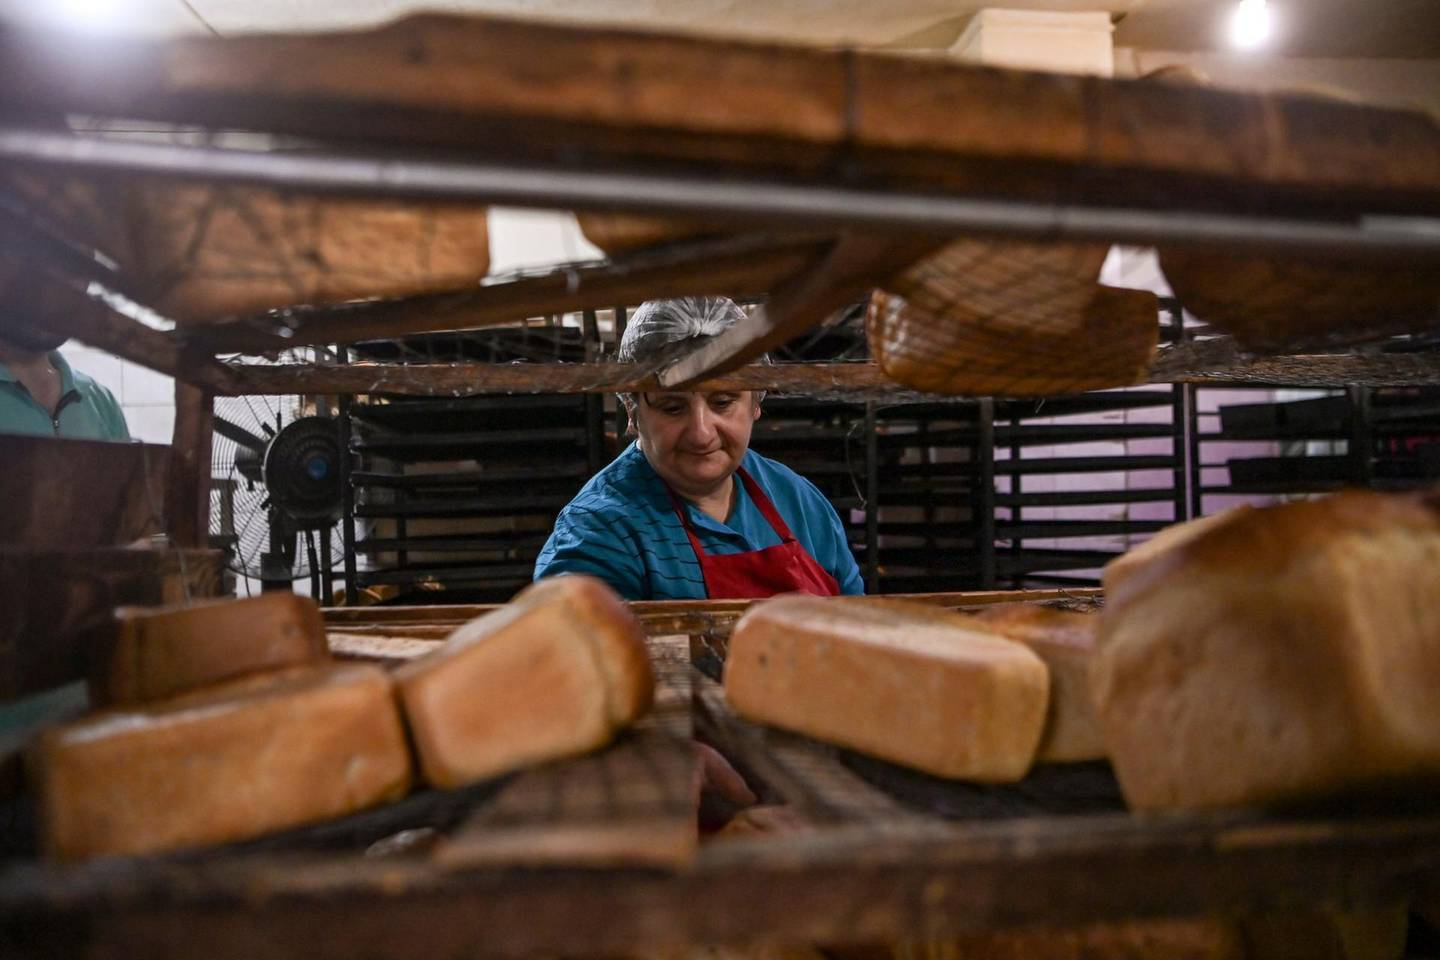 A woman makes bread at a bakery in the city of Stepanakert, that works 24 hours a day to offer free bread to the remain residents and delivering - when needed - to the cities of Martuni and Martakert, on October 21, 2020, during the ongoing fighting between Armenia and Azerbaijan over the breakaway region of Nagorno-Karabakh. / AFP / ARIS MESSINIS